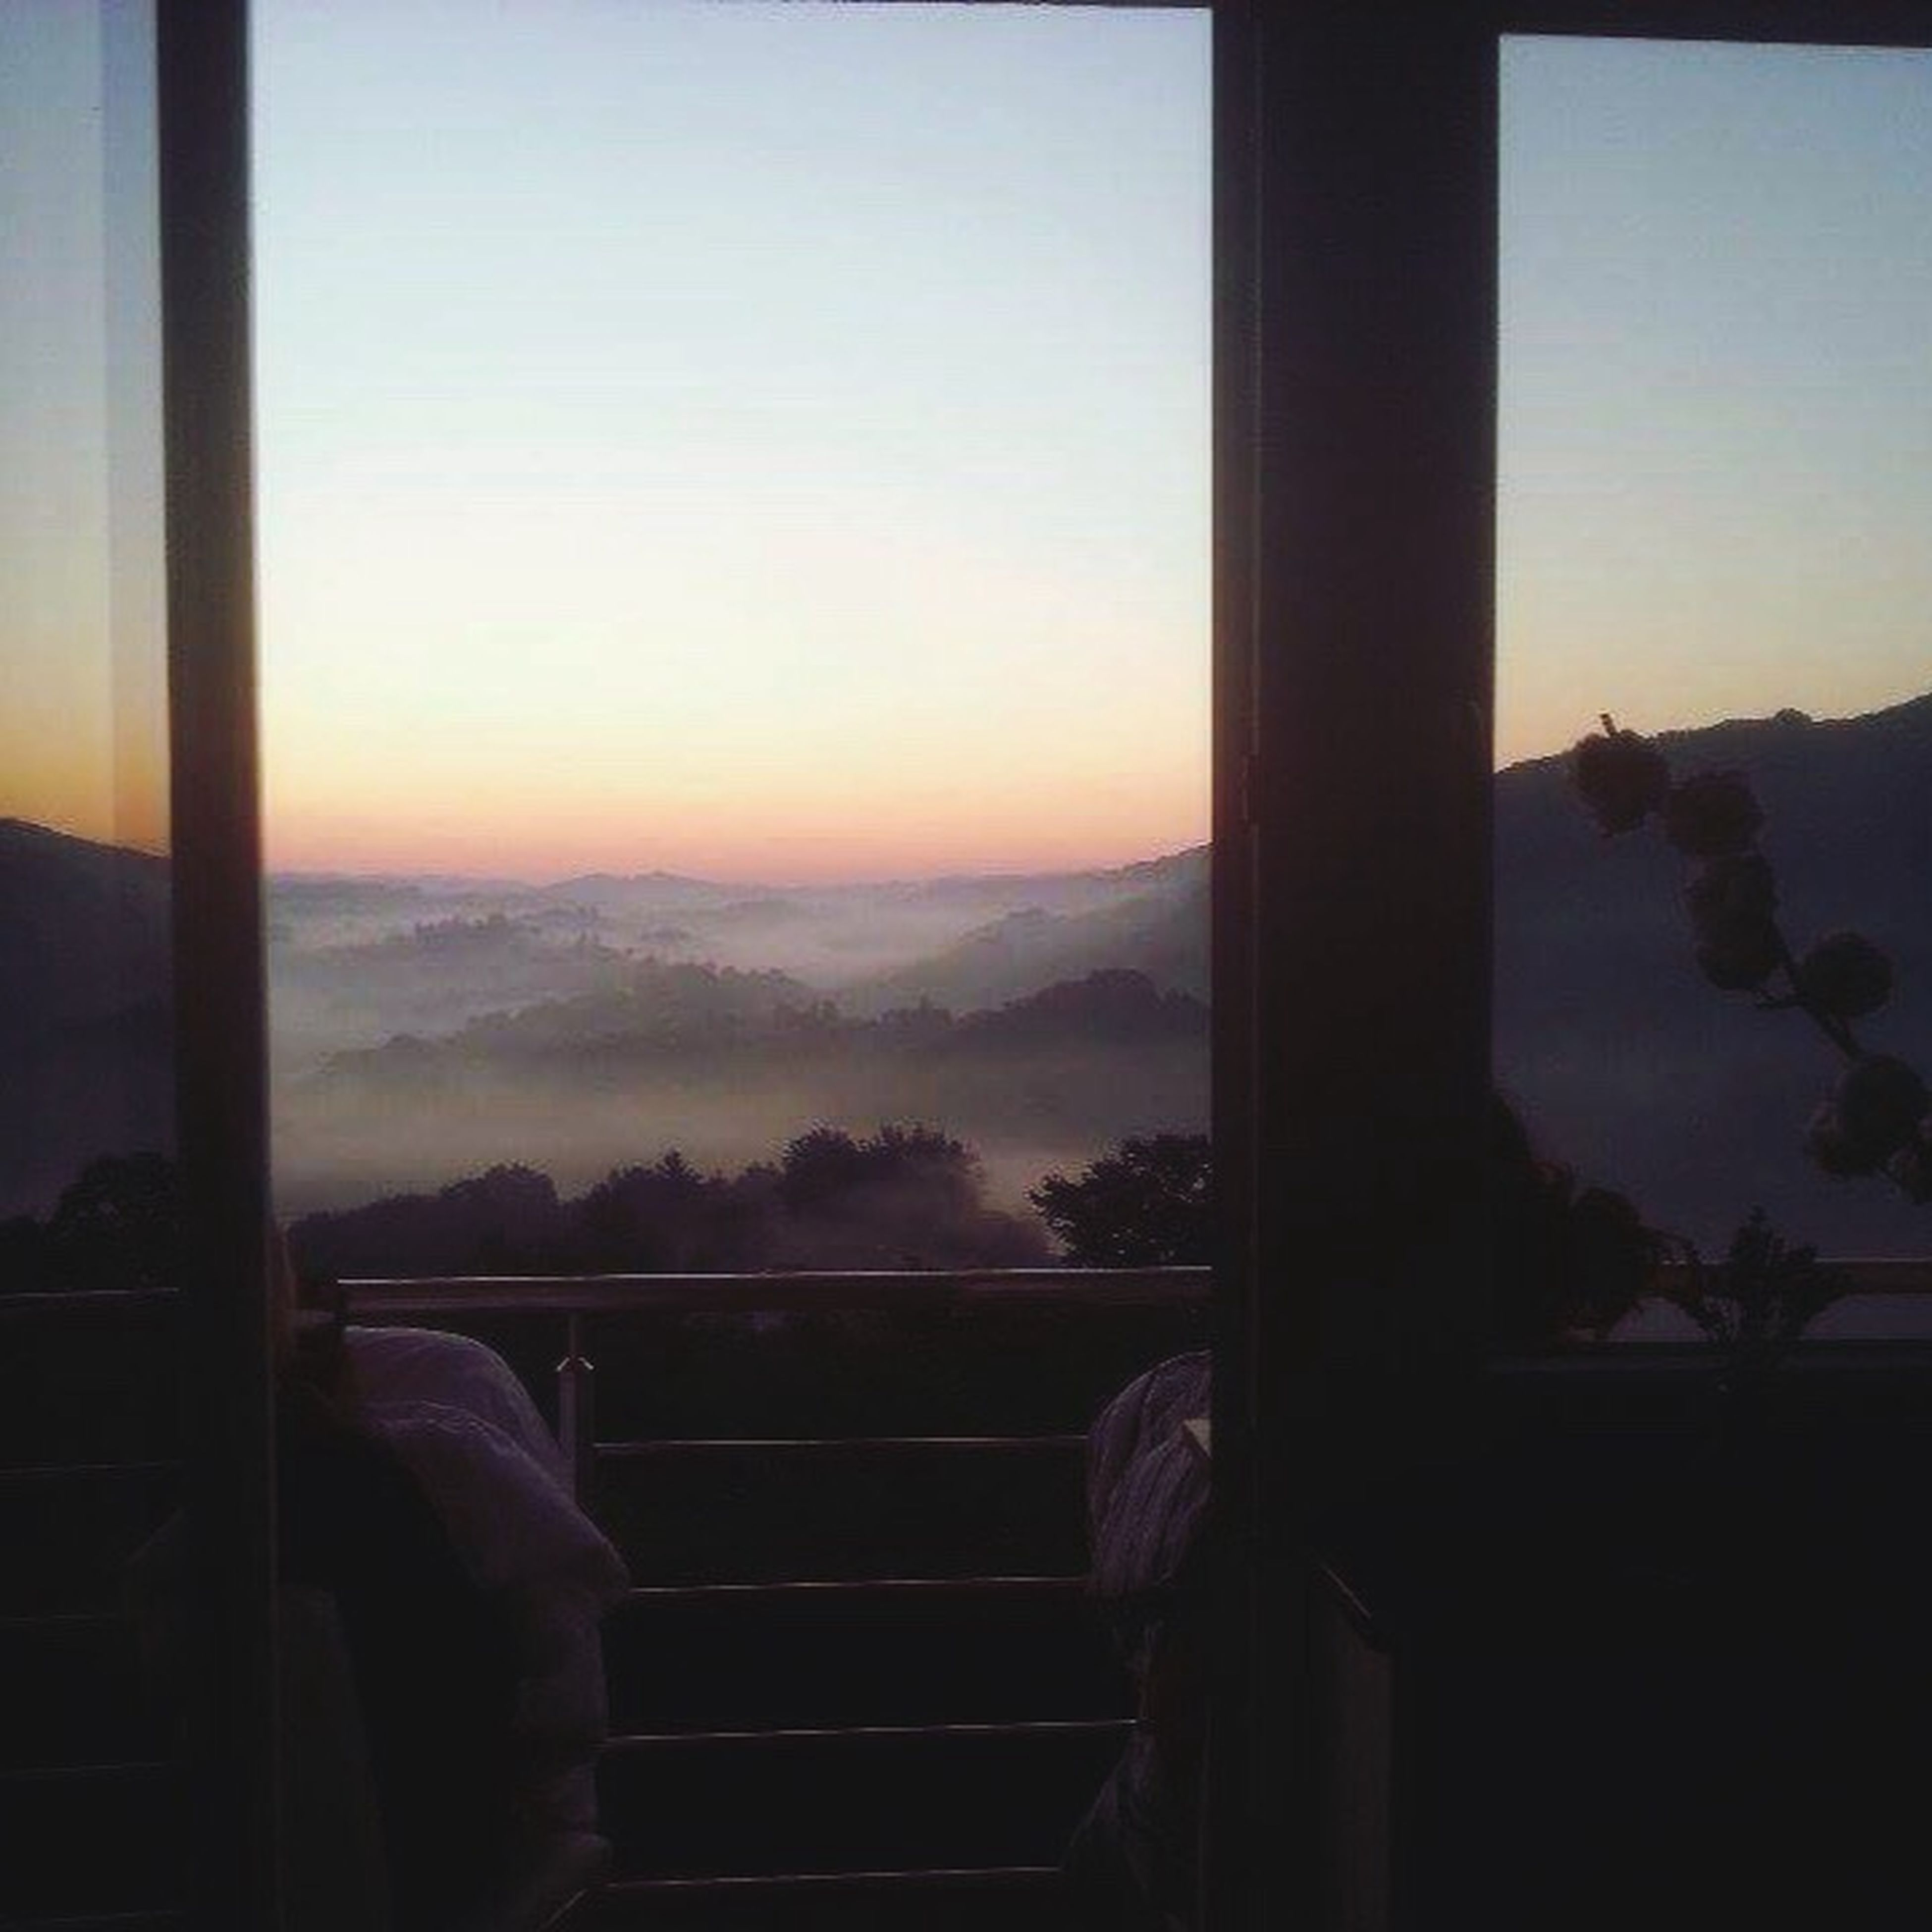 window, sunset, indoors, sky, scenics, transparent, orange color, mountain, cloud, tranquil scene, tranquility, nature, beauty in nature, mountain range, cloudscape, remote, cloud - sky, romantic sky